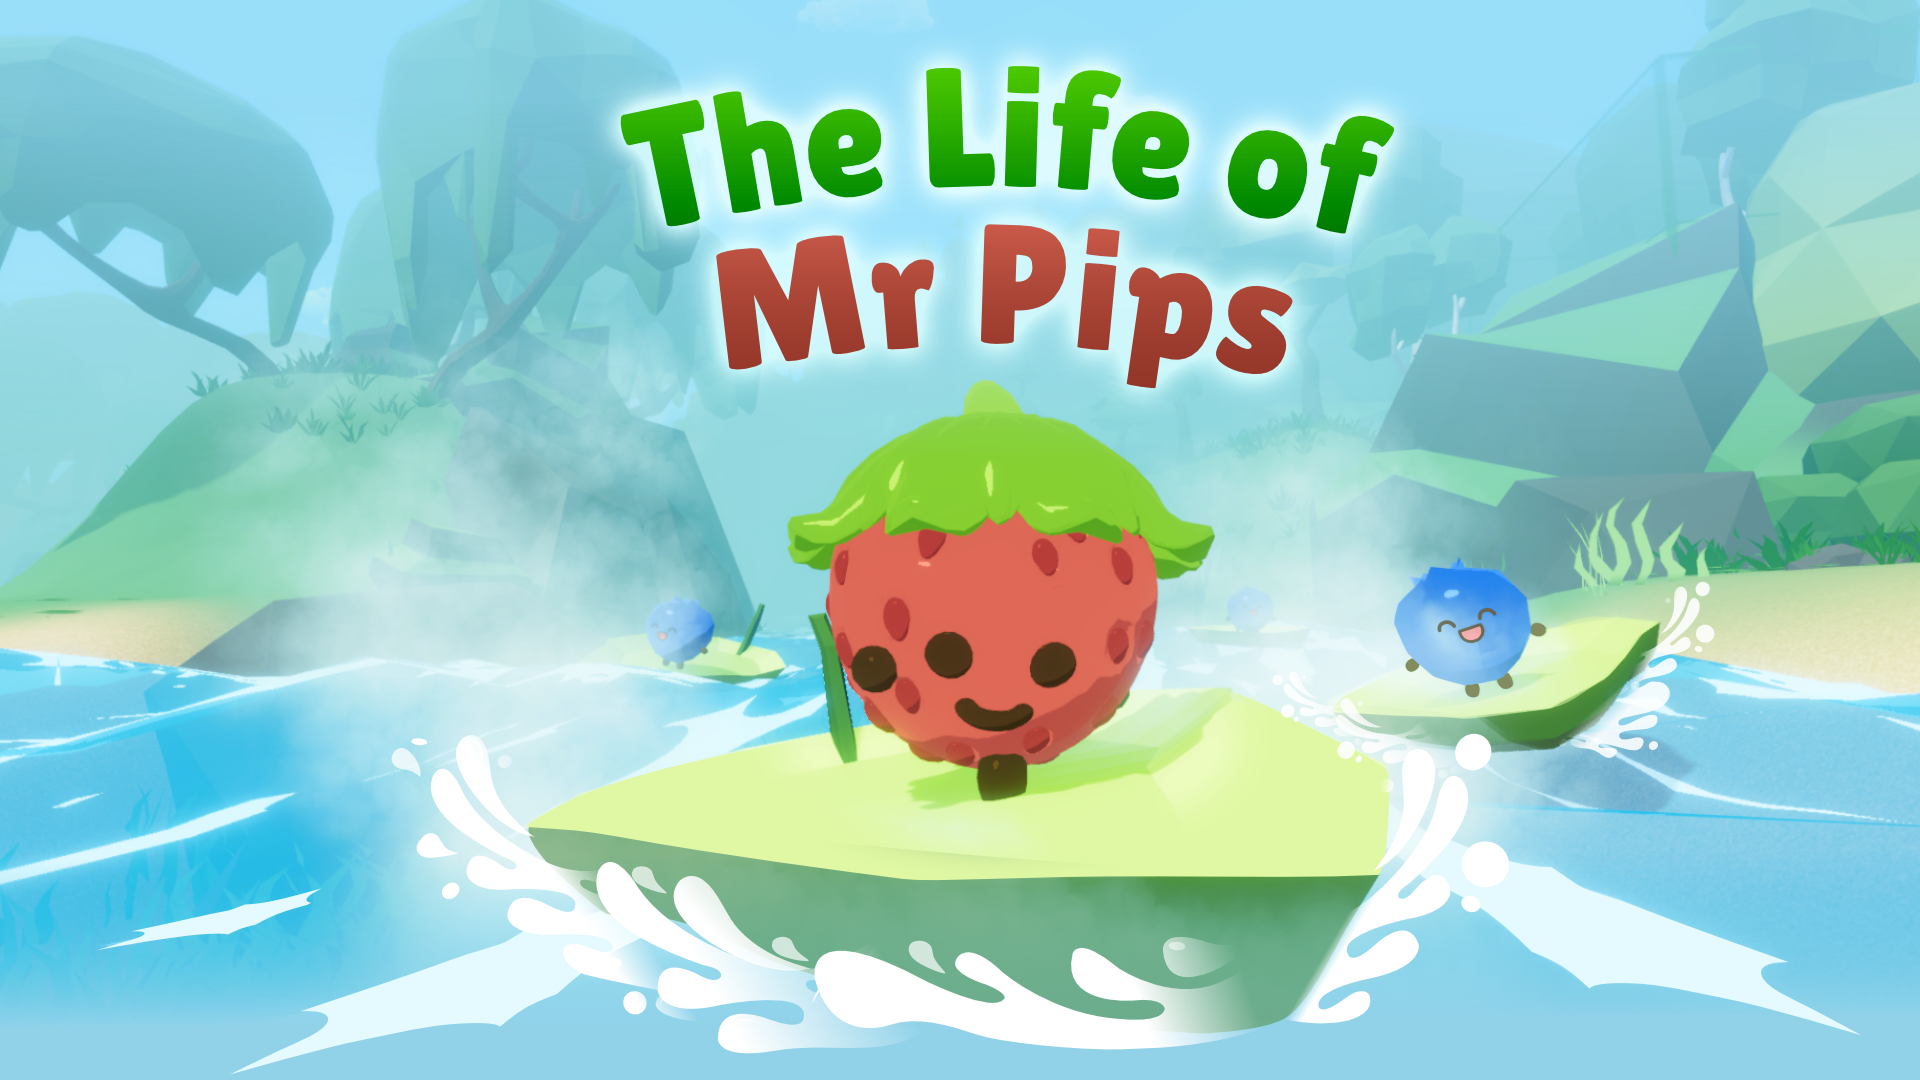 The Life of Mr Pips